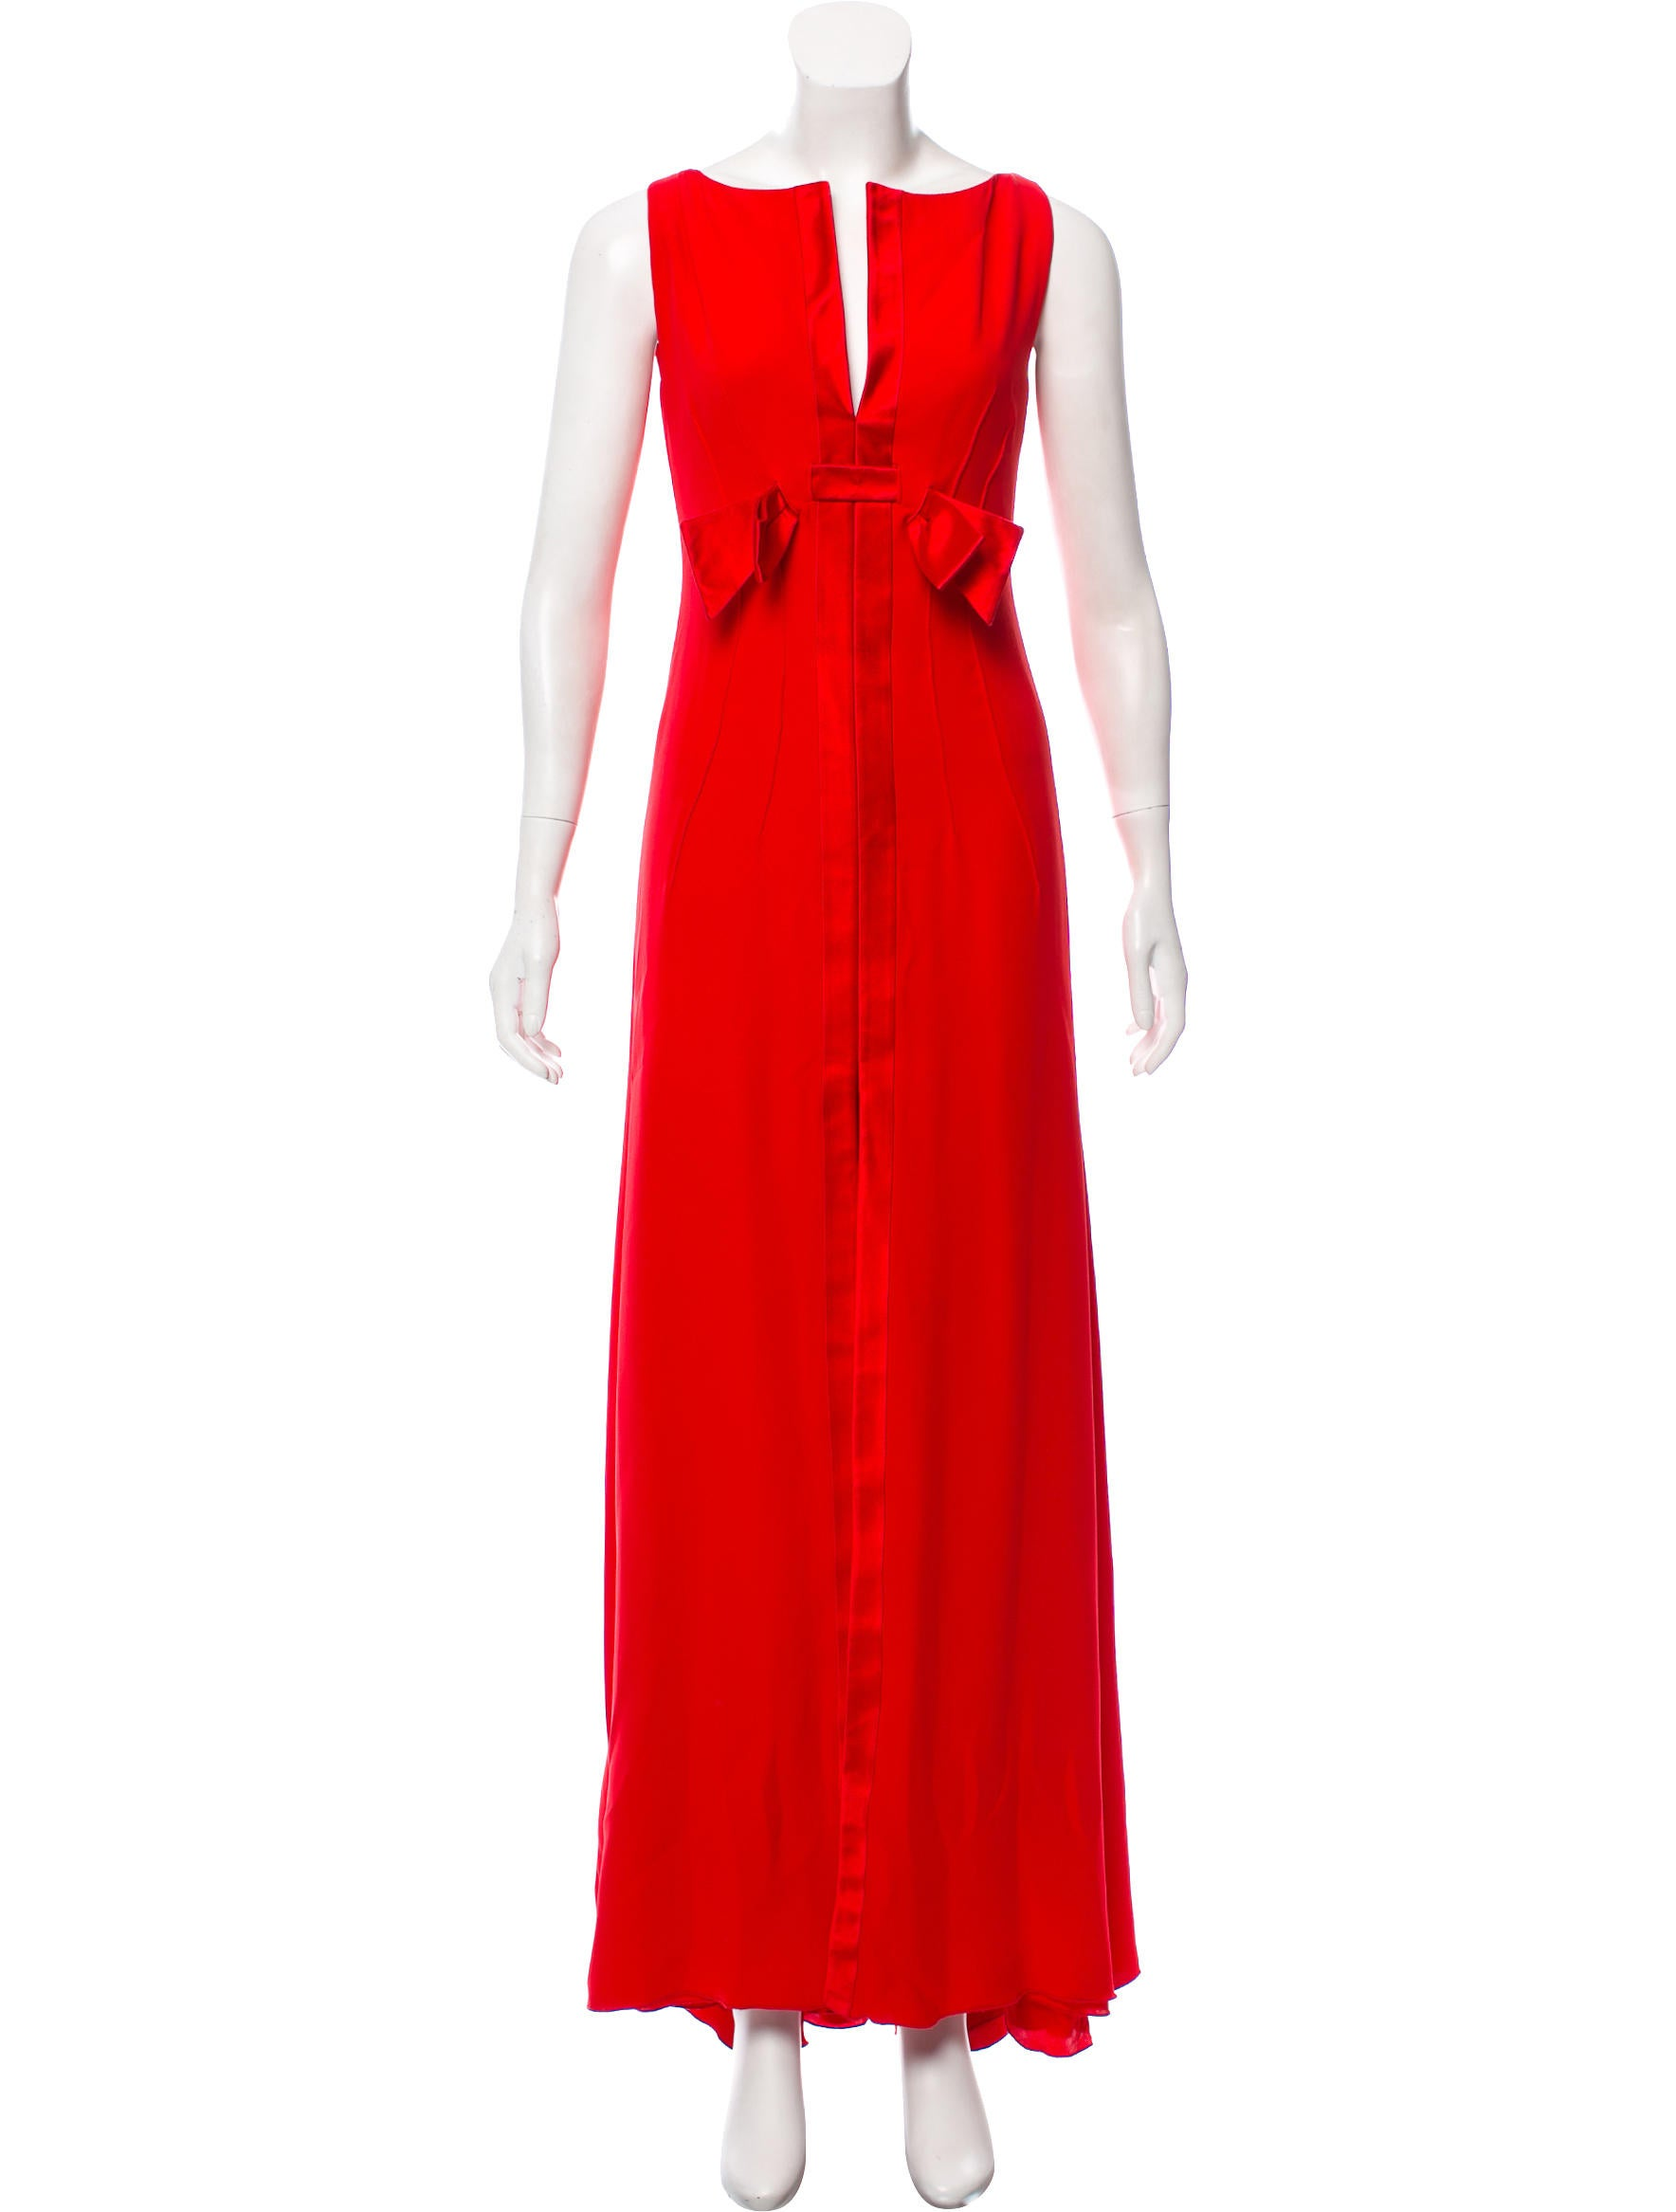 Valentino Silk Evening Dress - Clothing - VAL87693 | The RealReal